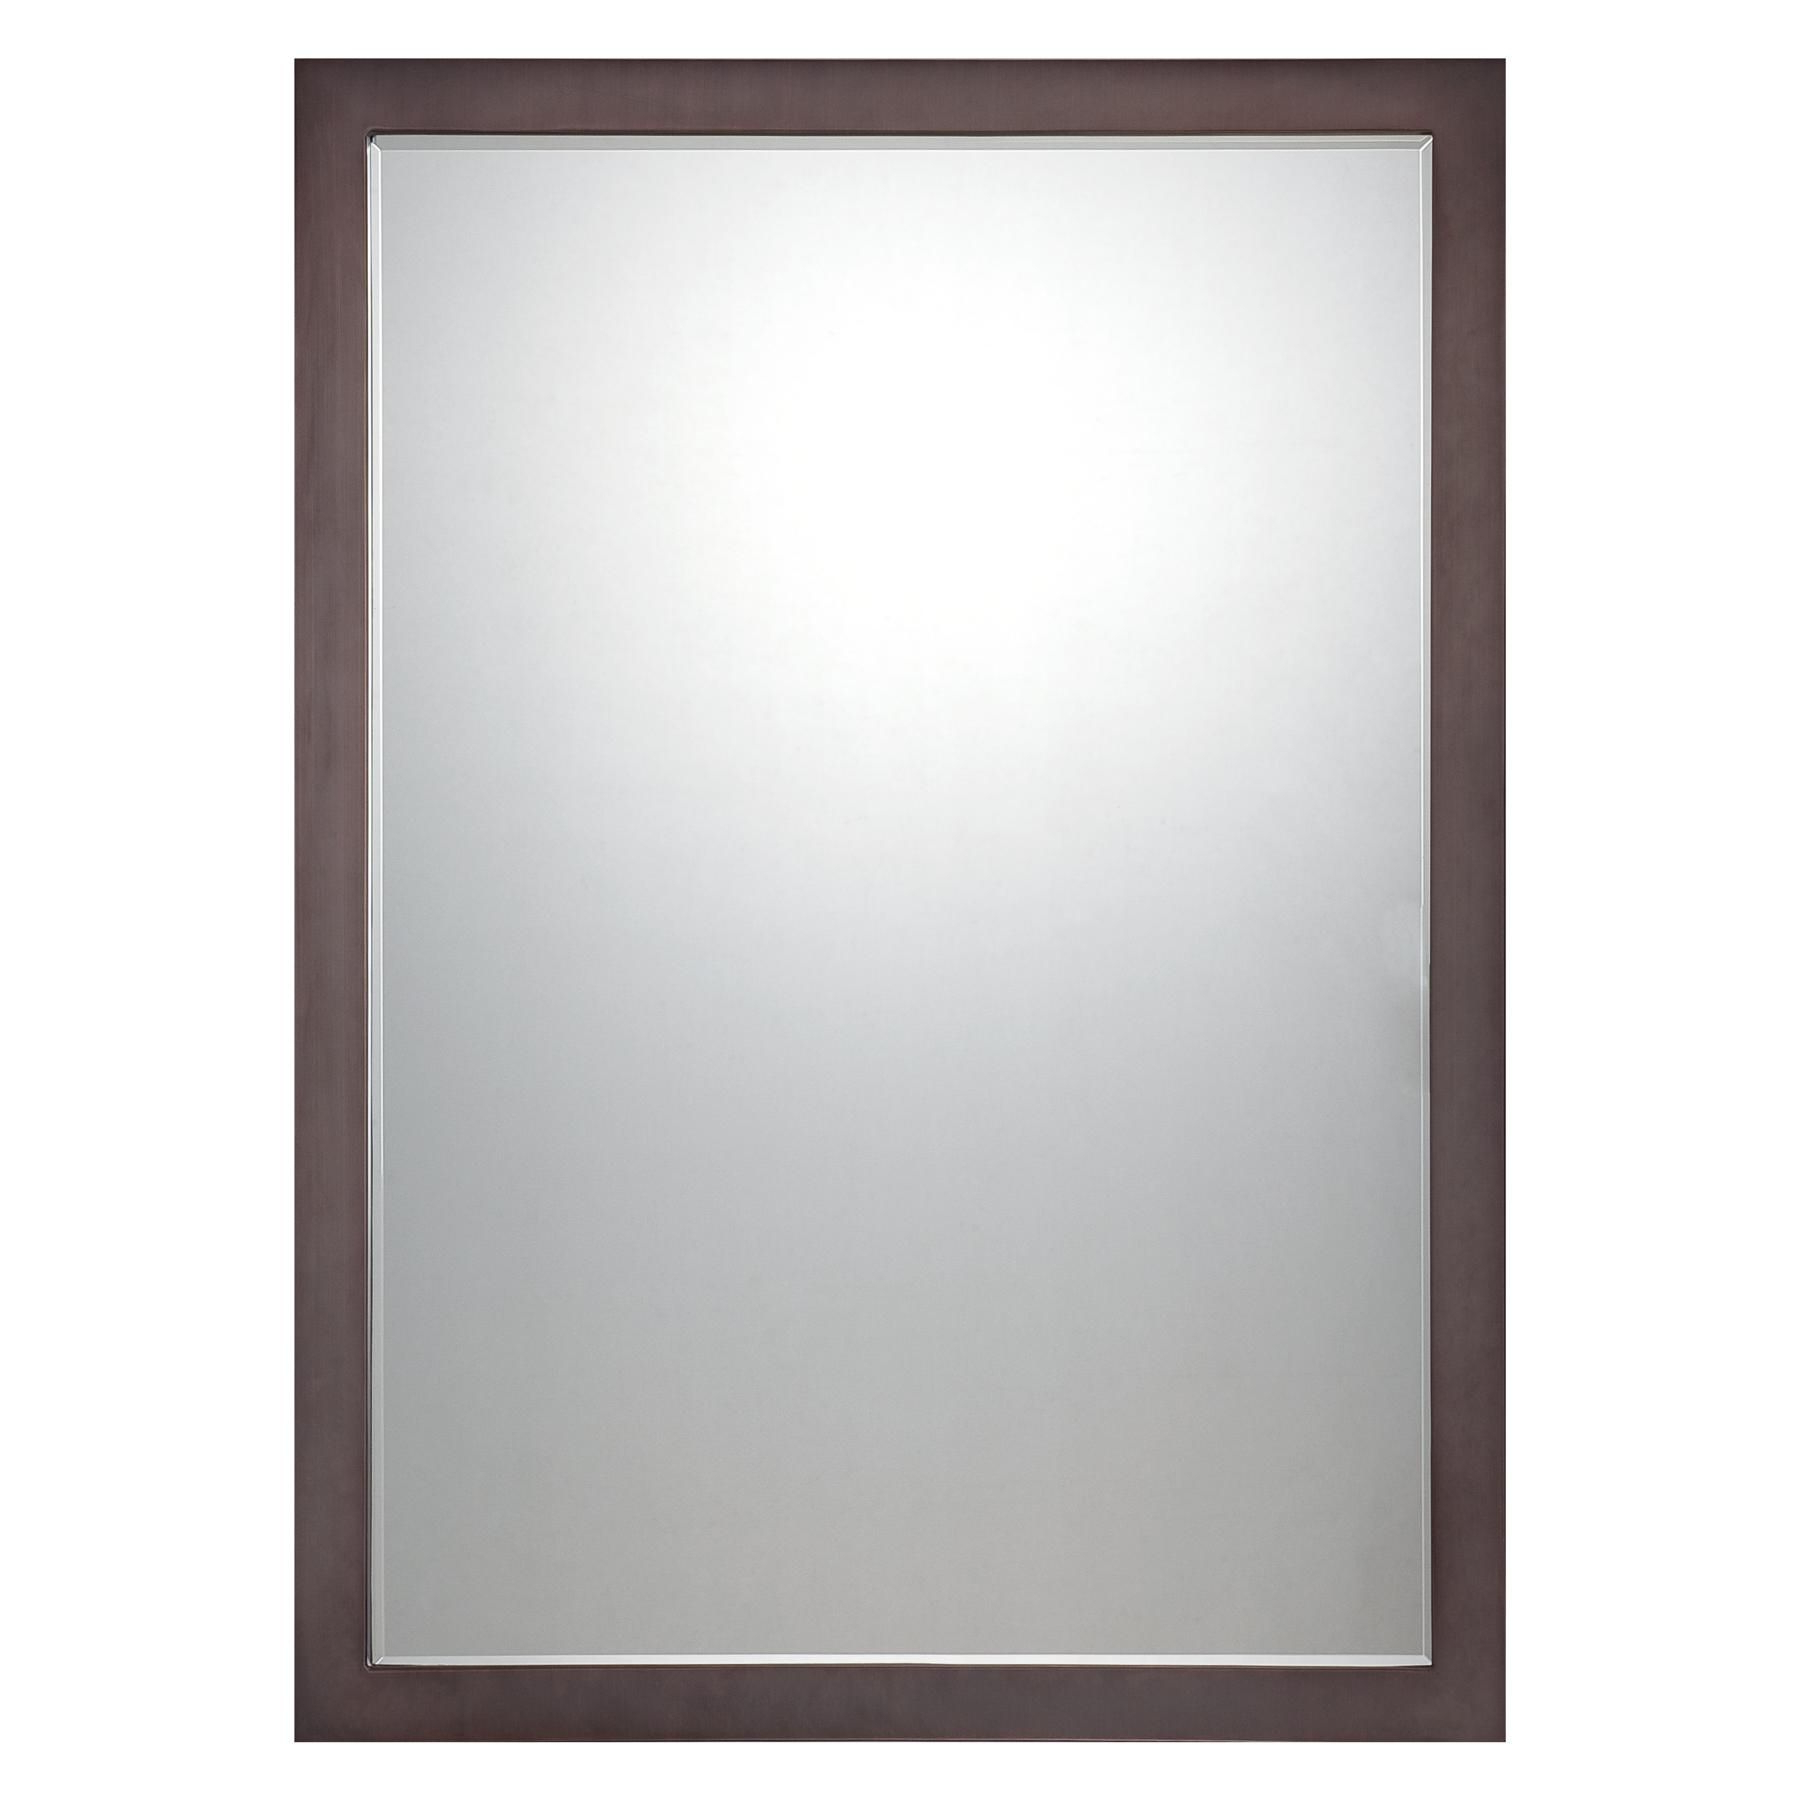 """Well Known Hogge Modern Brushed Nickel Large Frame Wall Mirrors With Regard To Paradox Brushed Nickel 24"""" X 33"""" Wall Mirror – # (View 20 of 20)"""